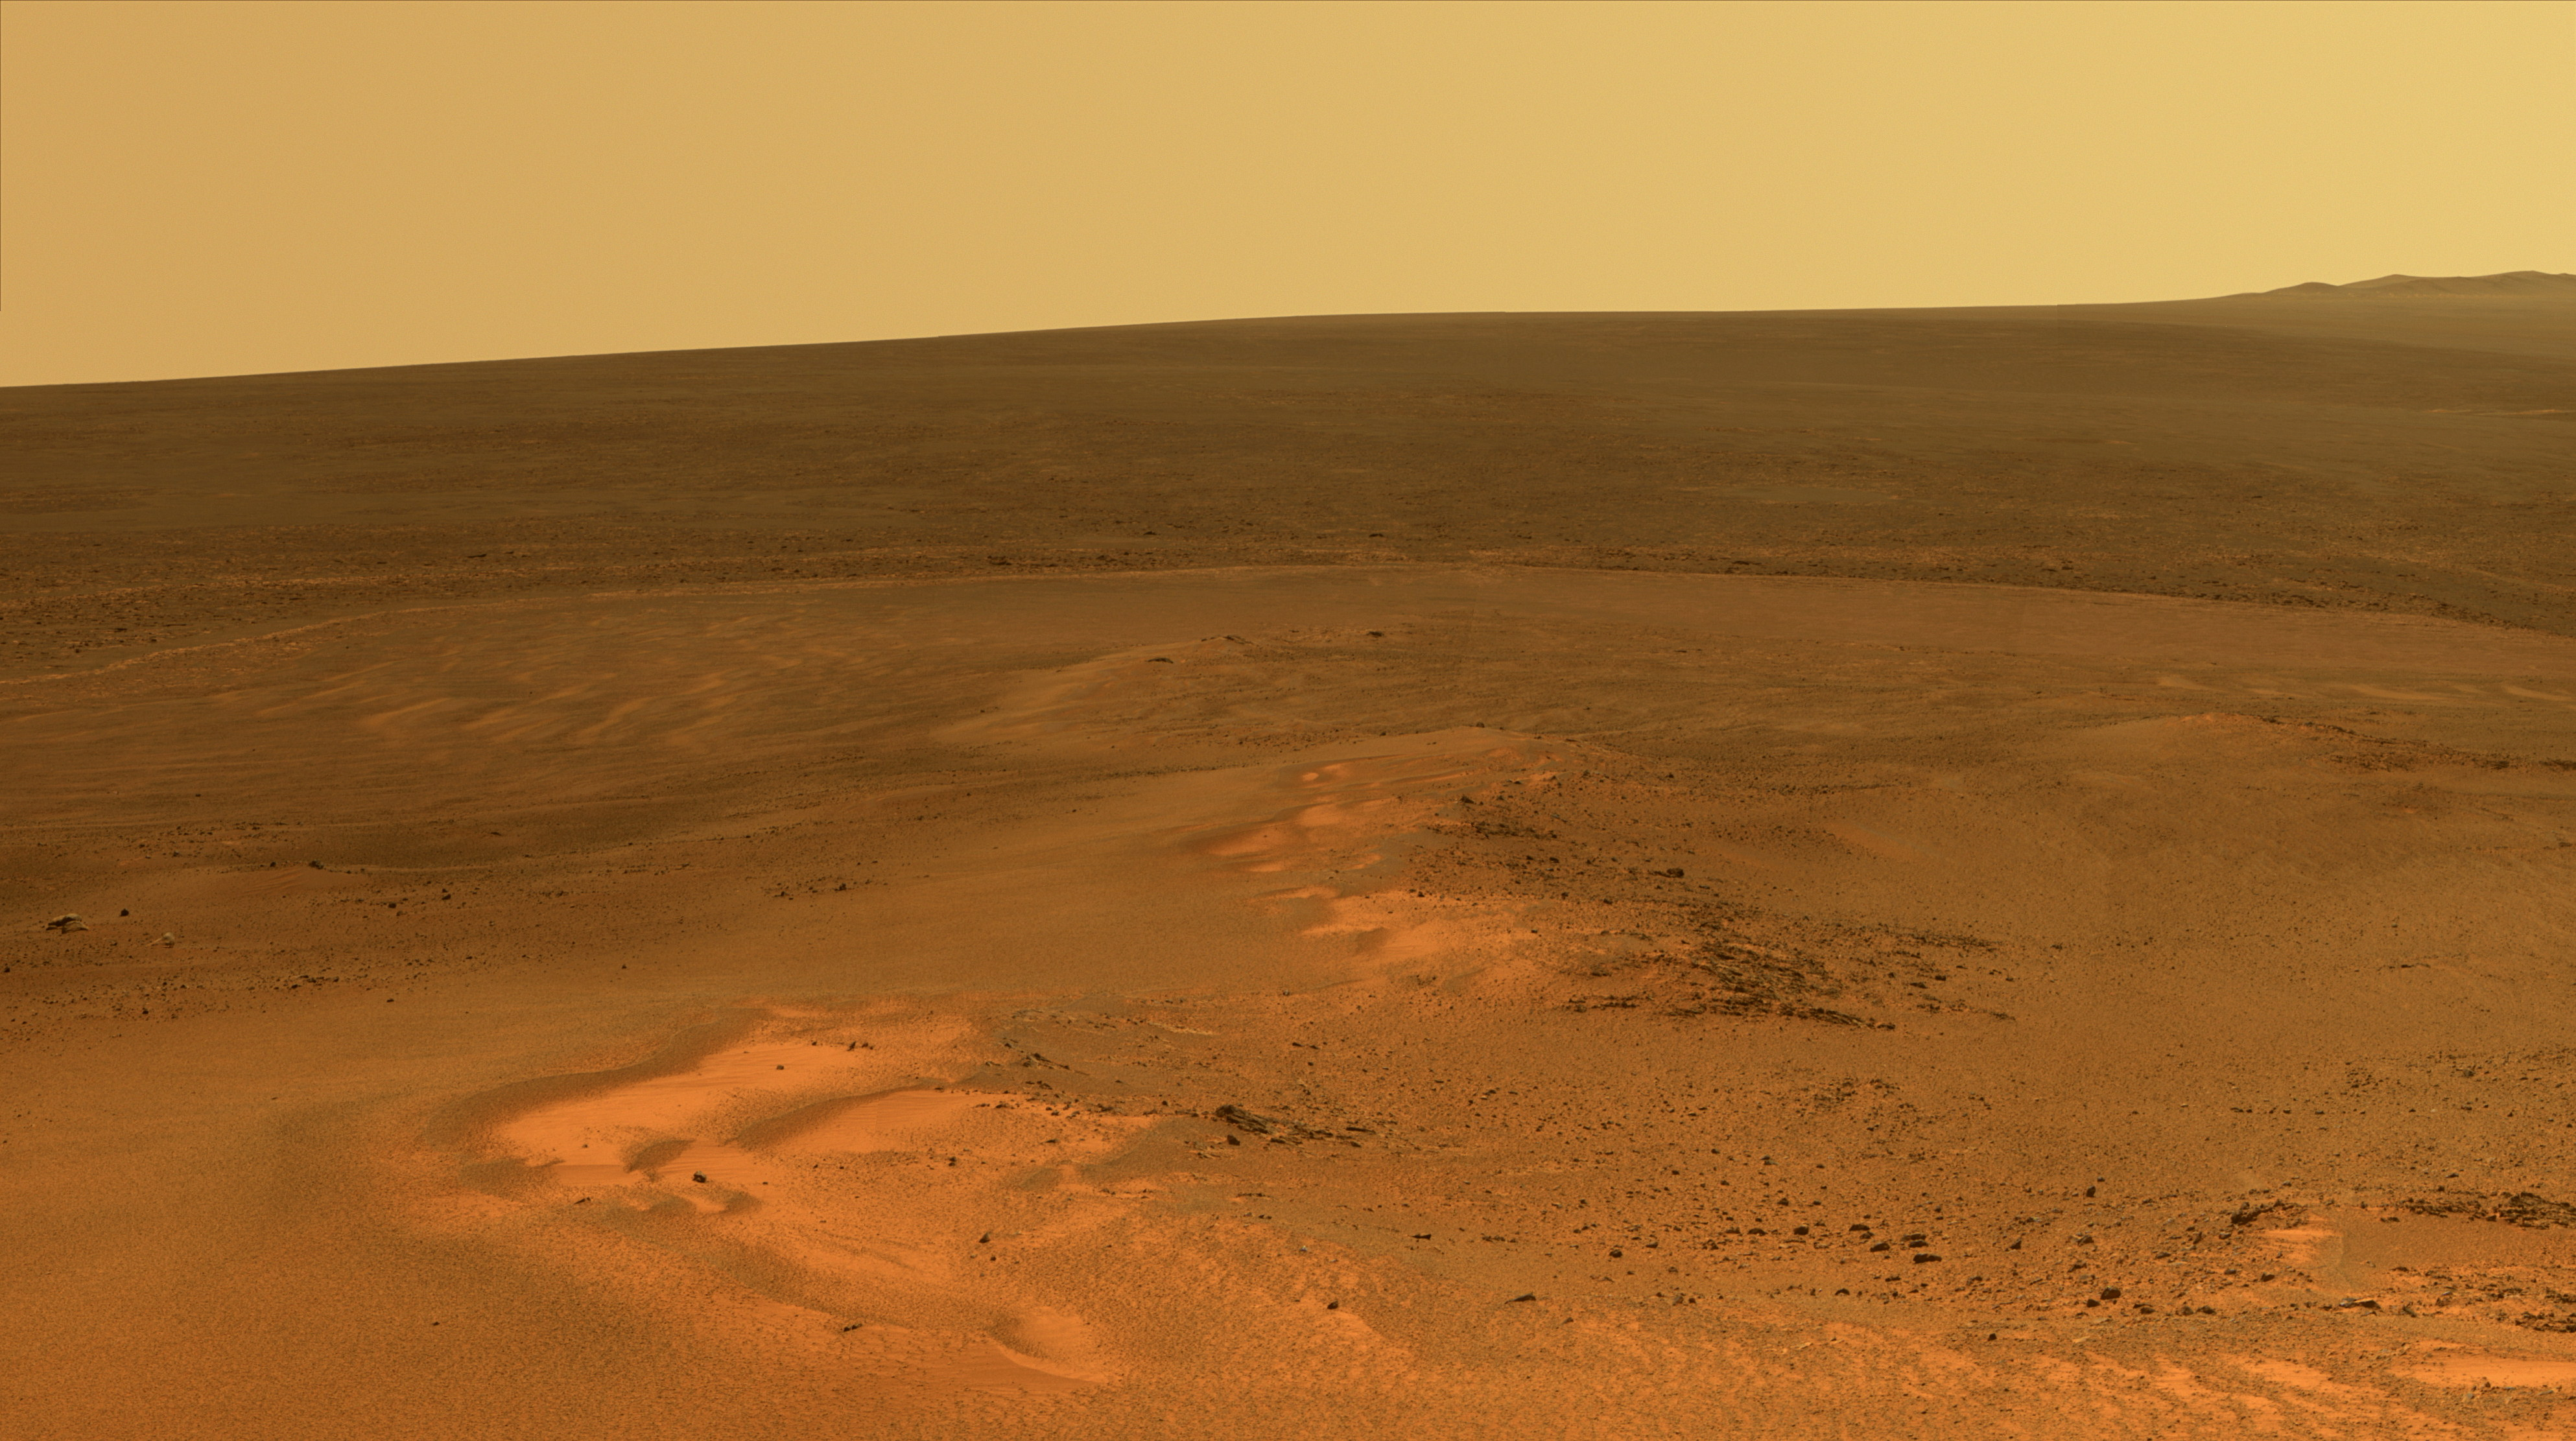 Mars: description and images of the red planet